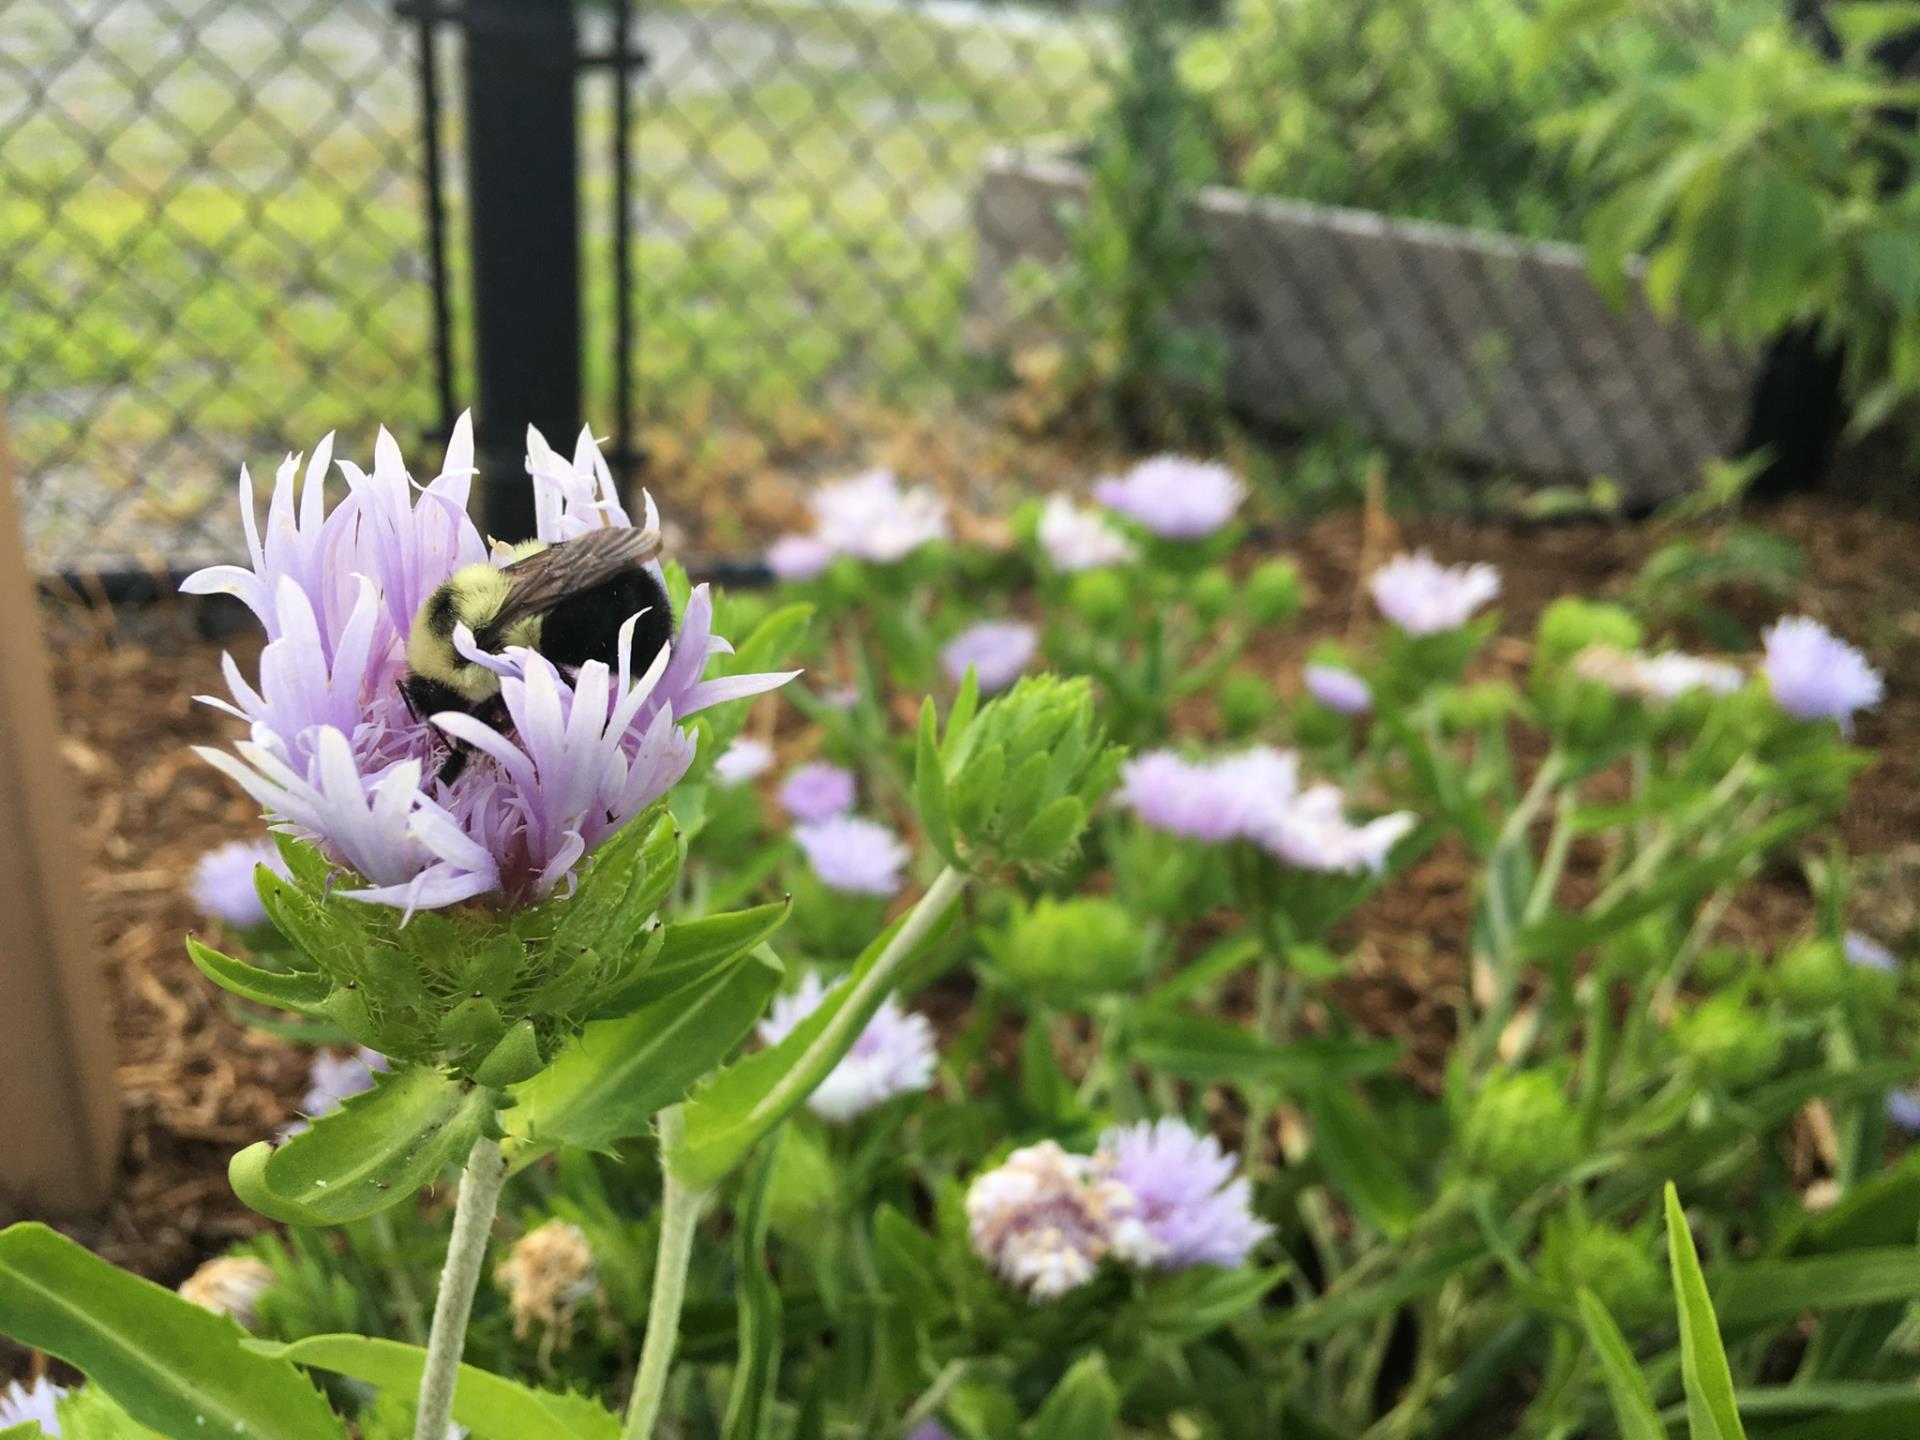 Explore pollinator and wildlife projects through the Cary Green Neighborhood Program